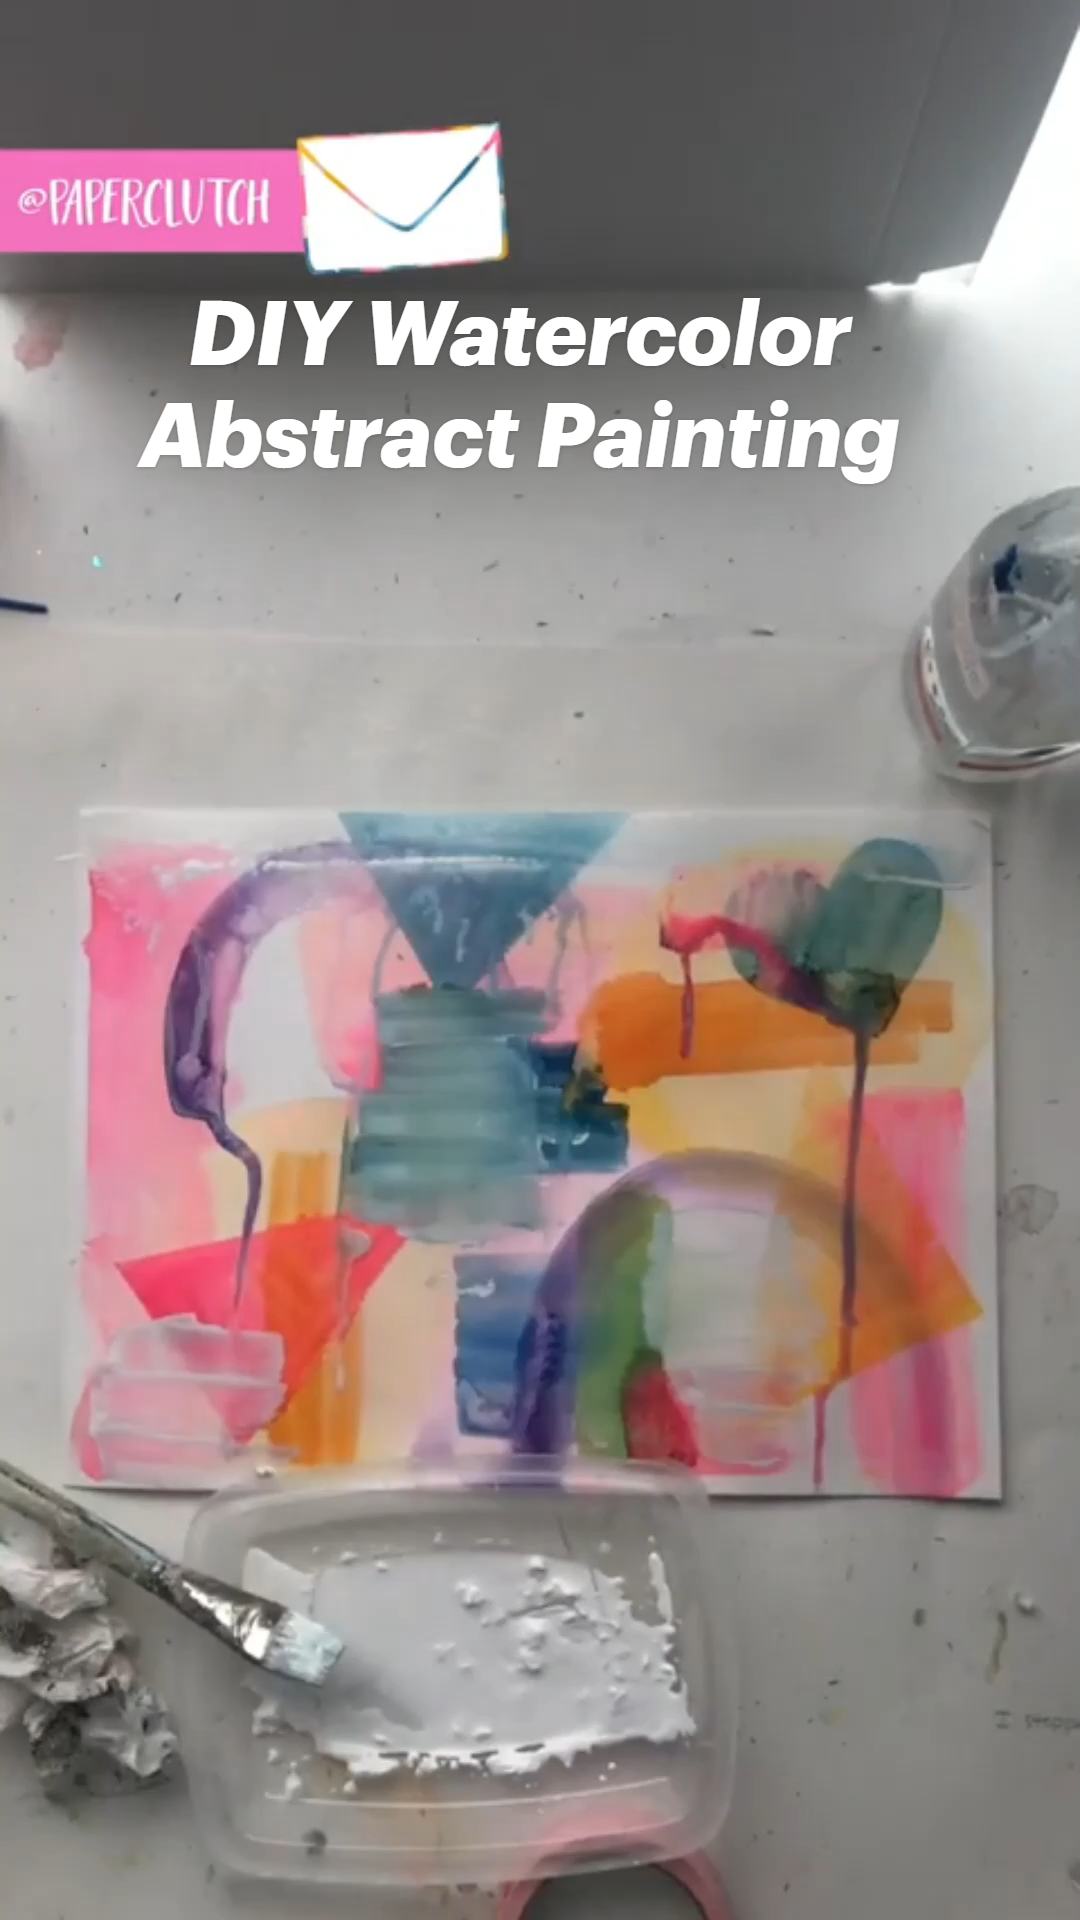 DIY Watercolor Abstract Painting